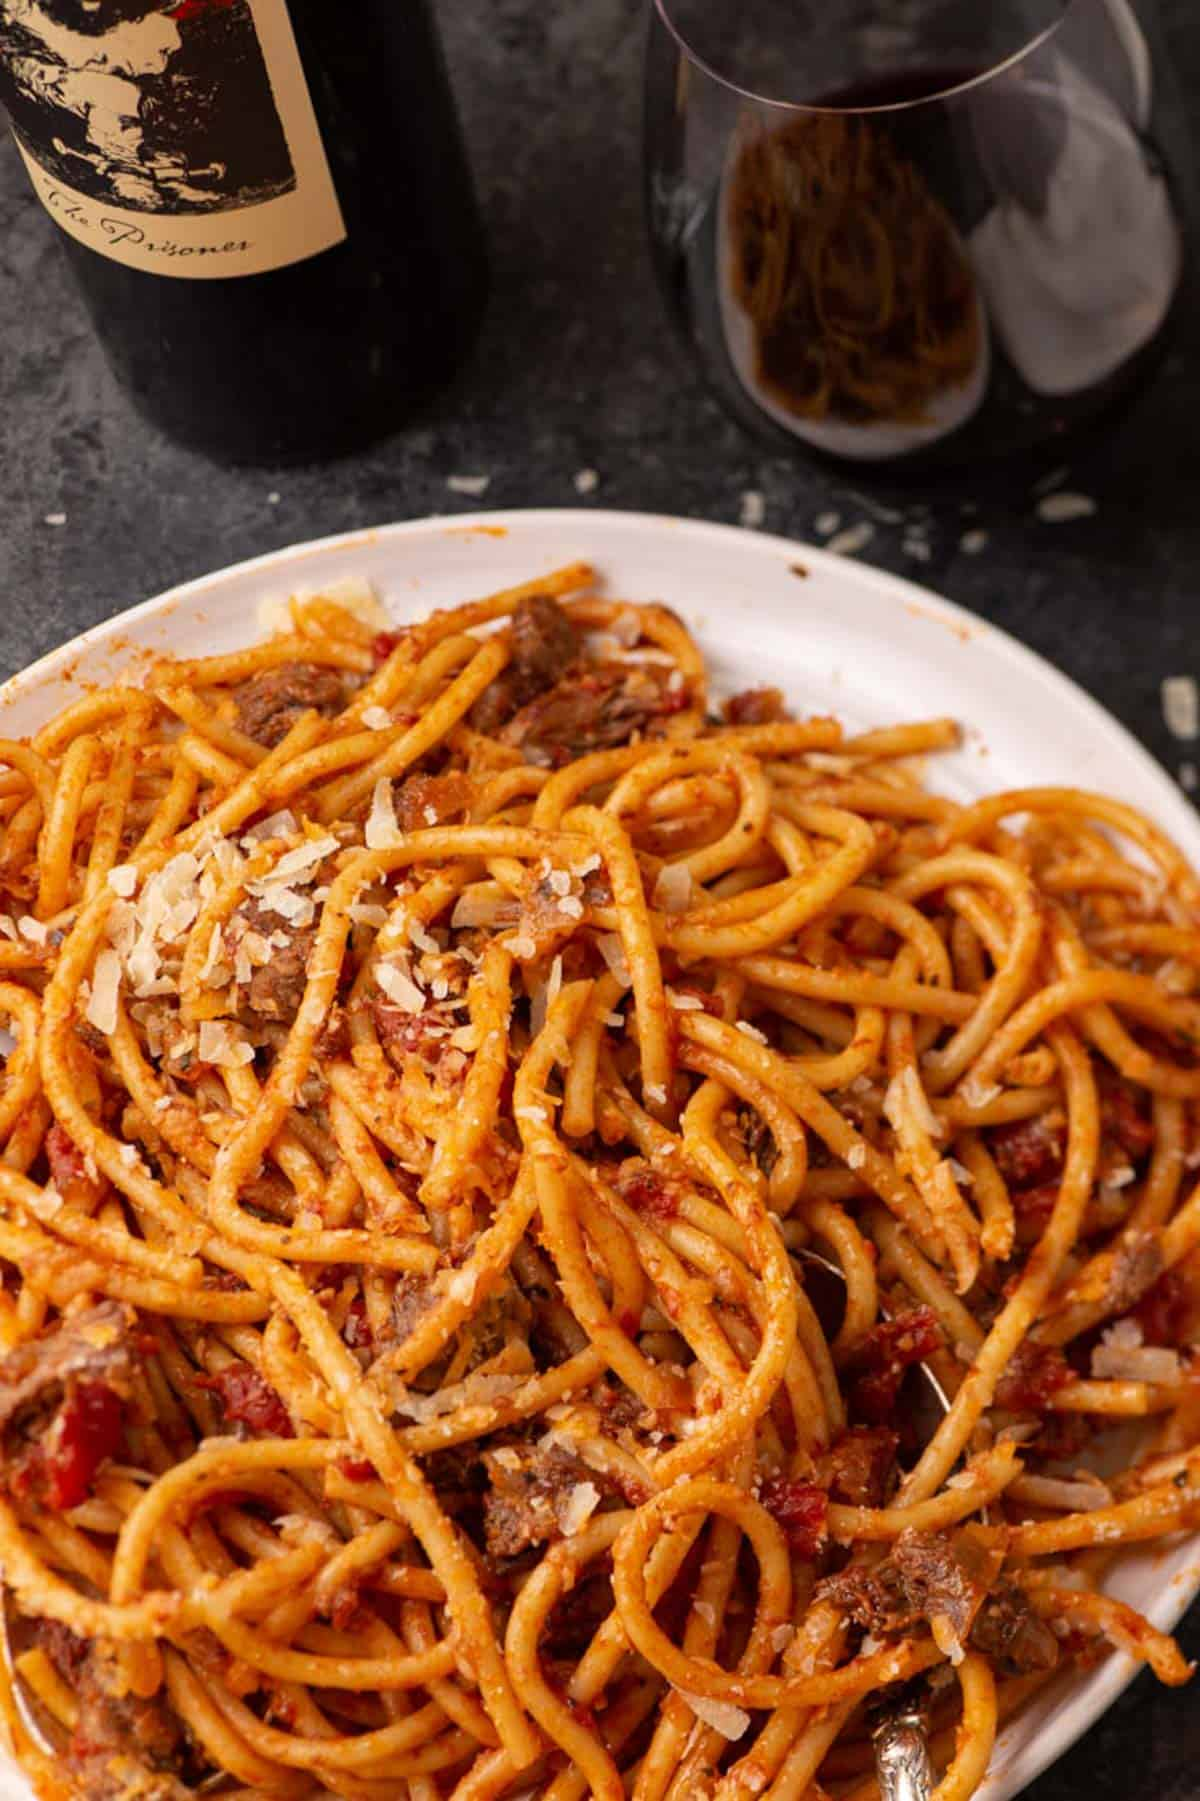 A platter of pasta with a bottle of wine